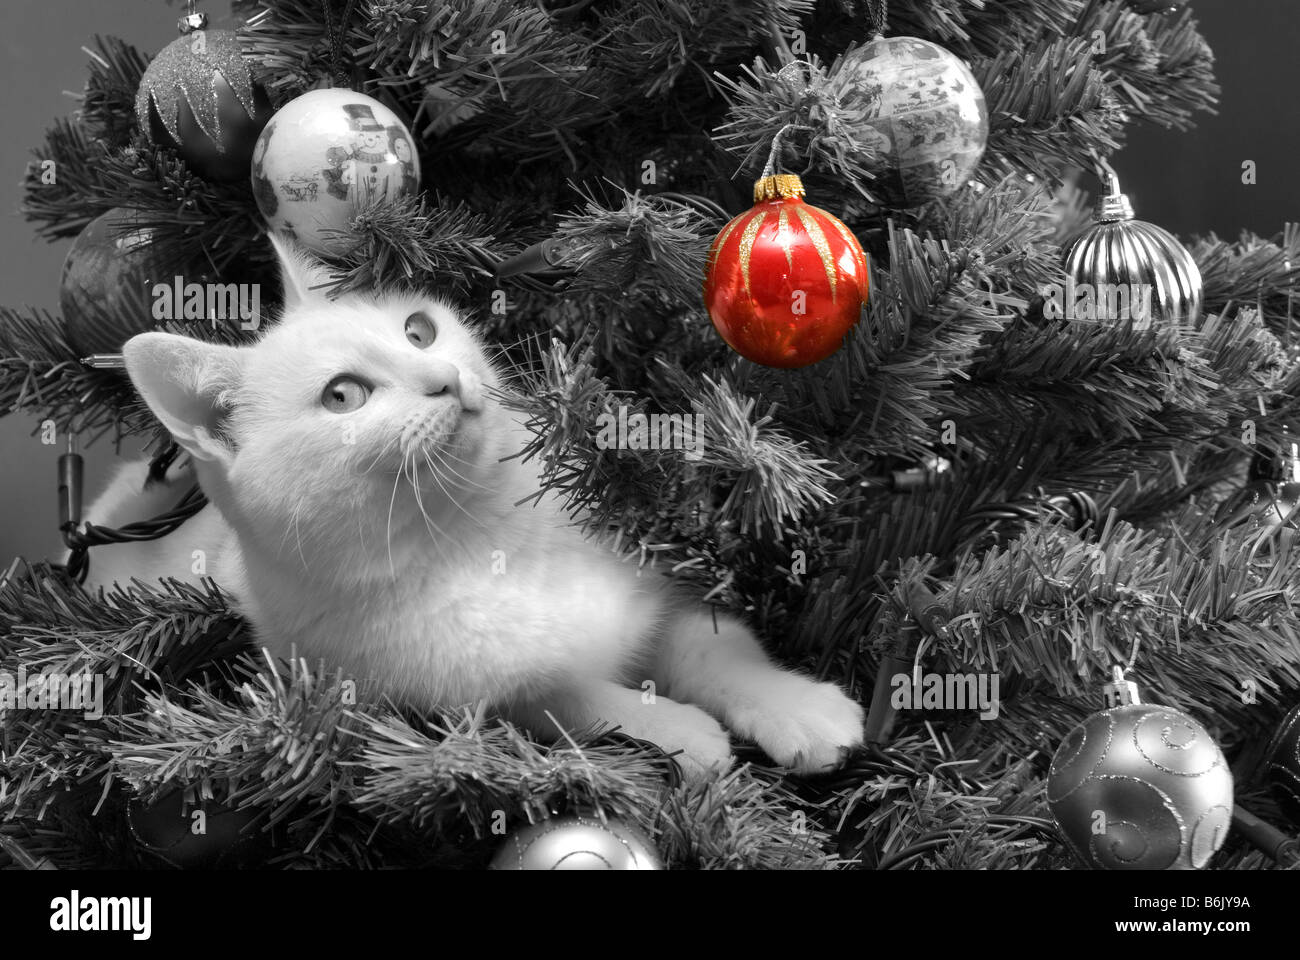 Black And White Photo Of A White Cat In A Decorated